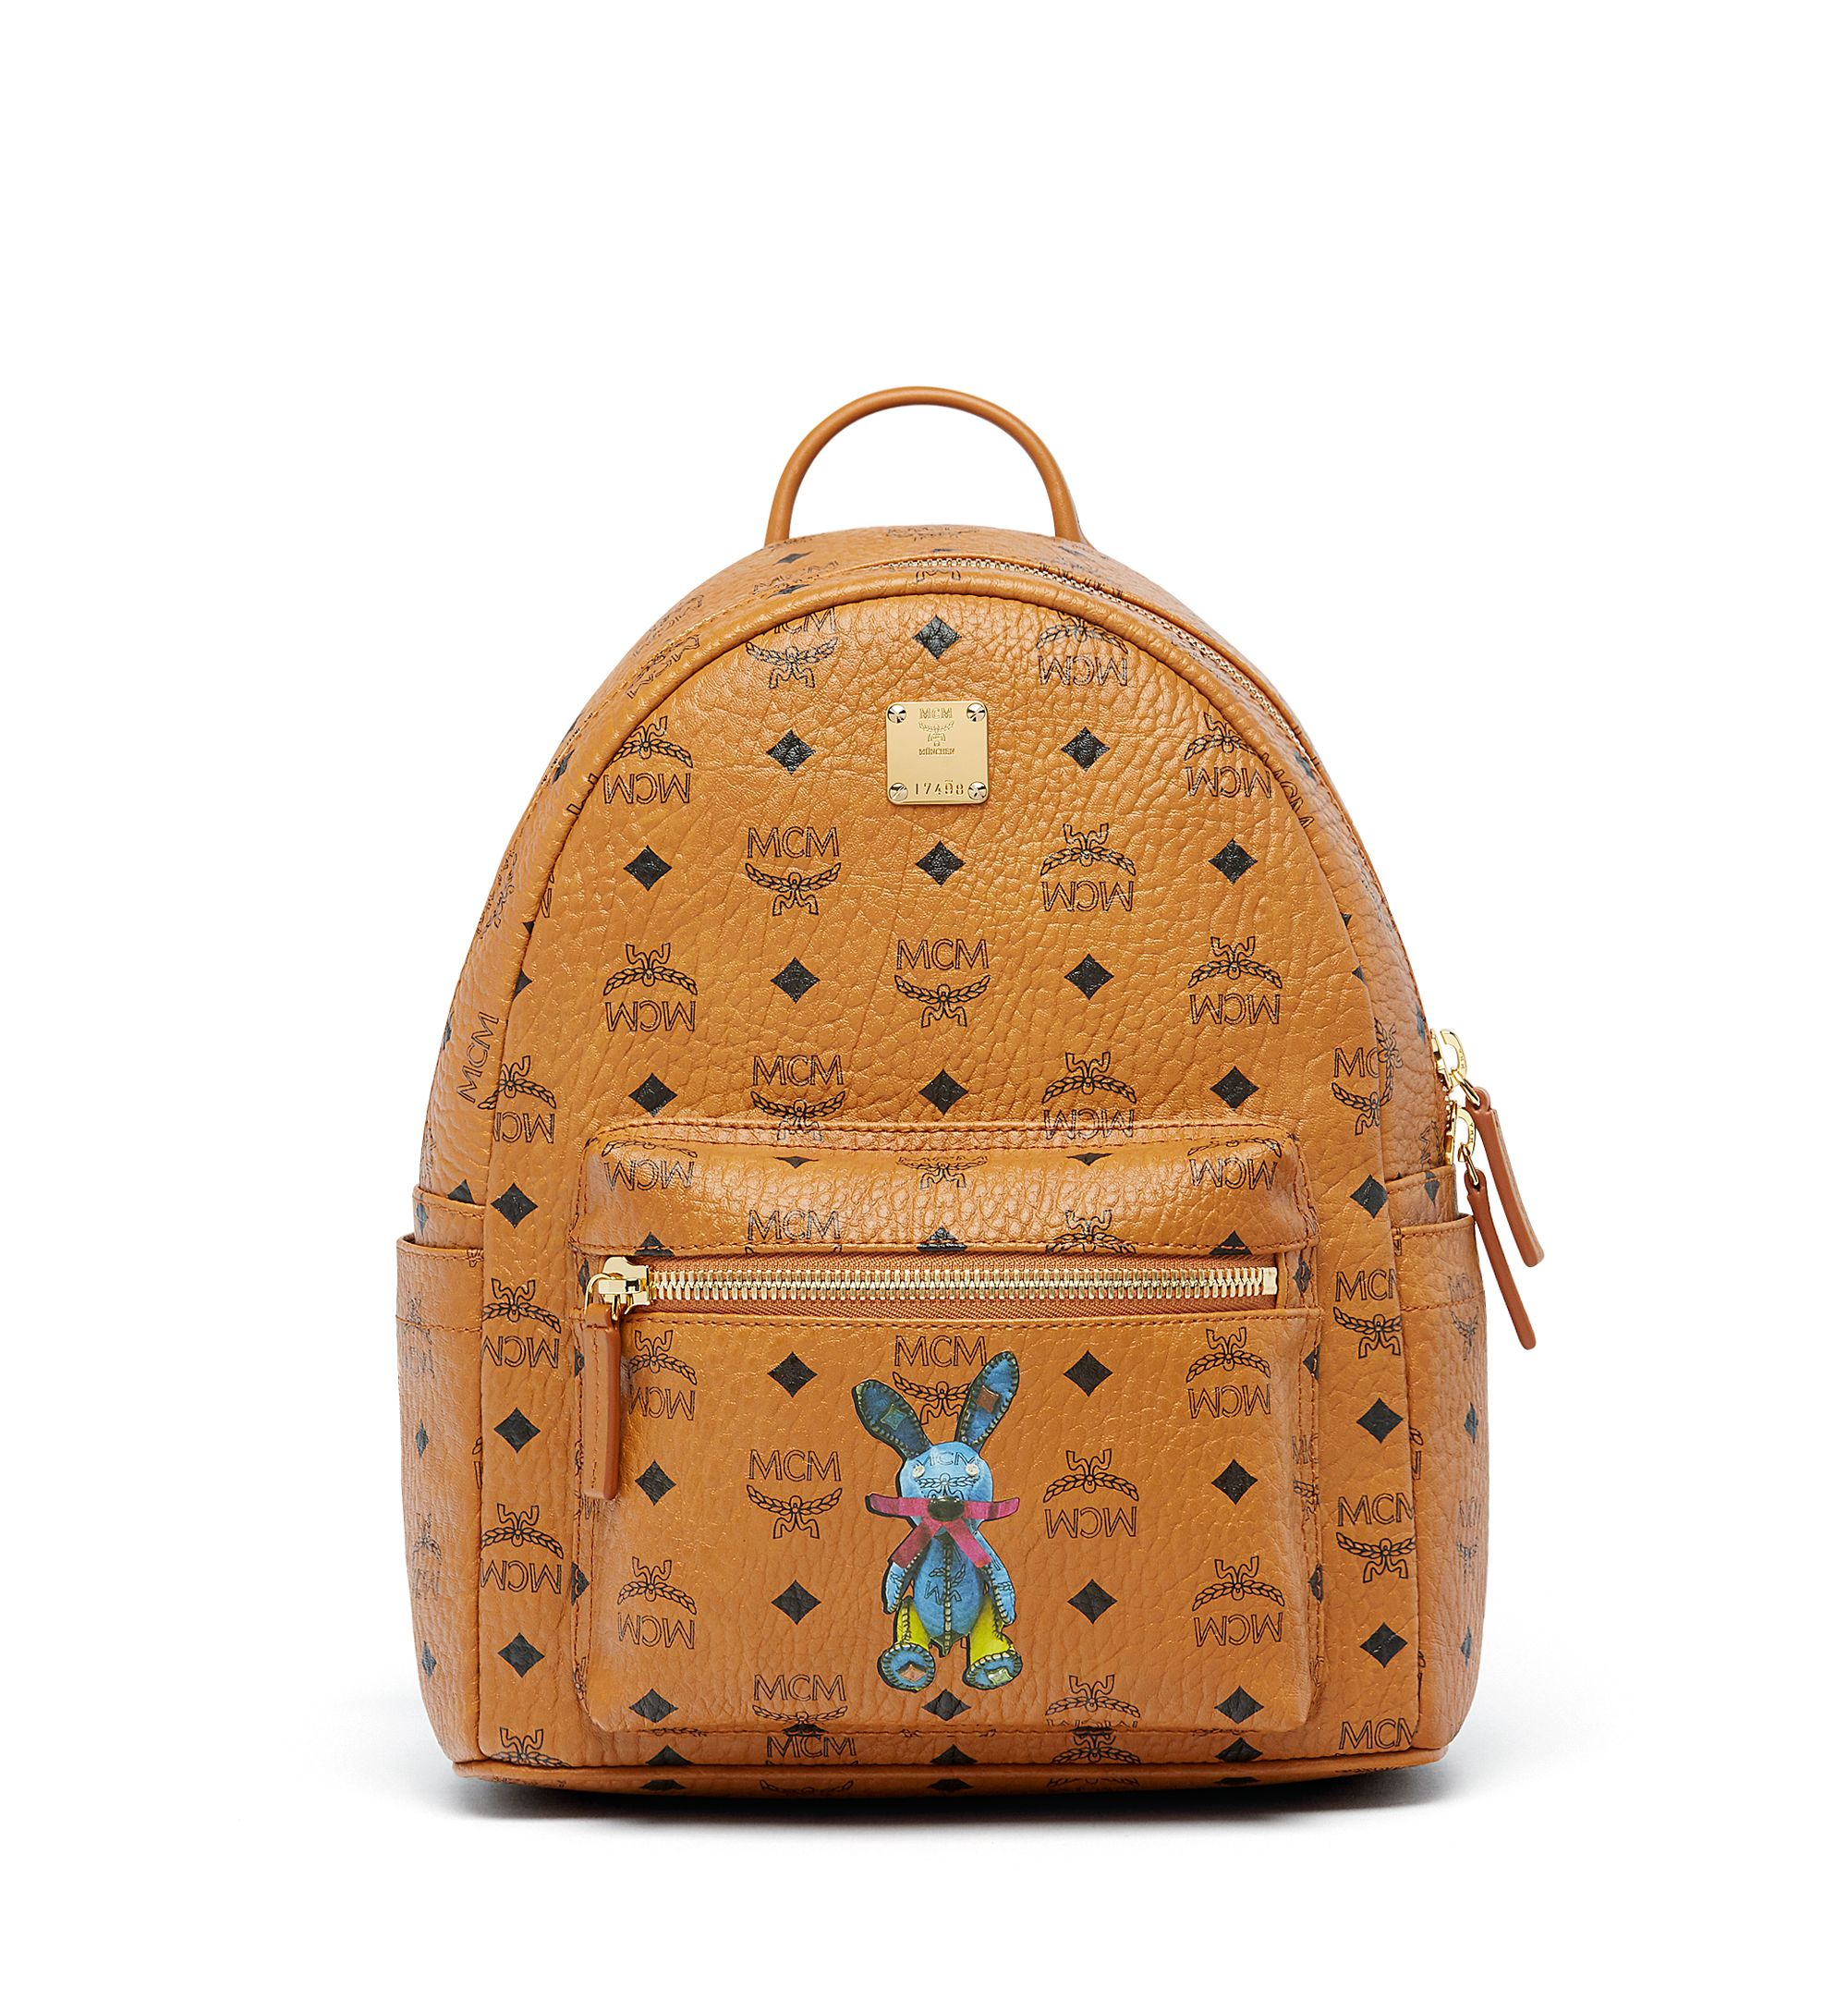 MCM RABBIT BACKPACK IN VISETOS.  mcm  bags  canvas  backpacks ... 0b51e6d59